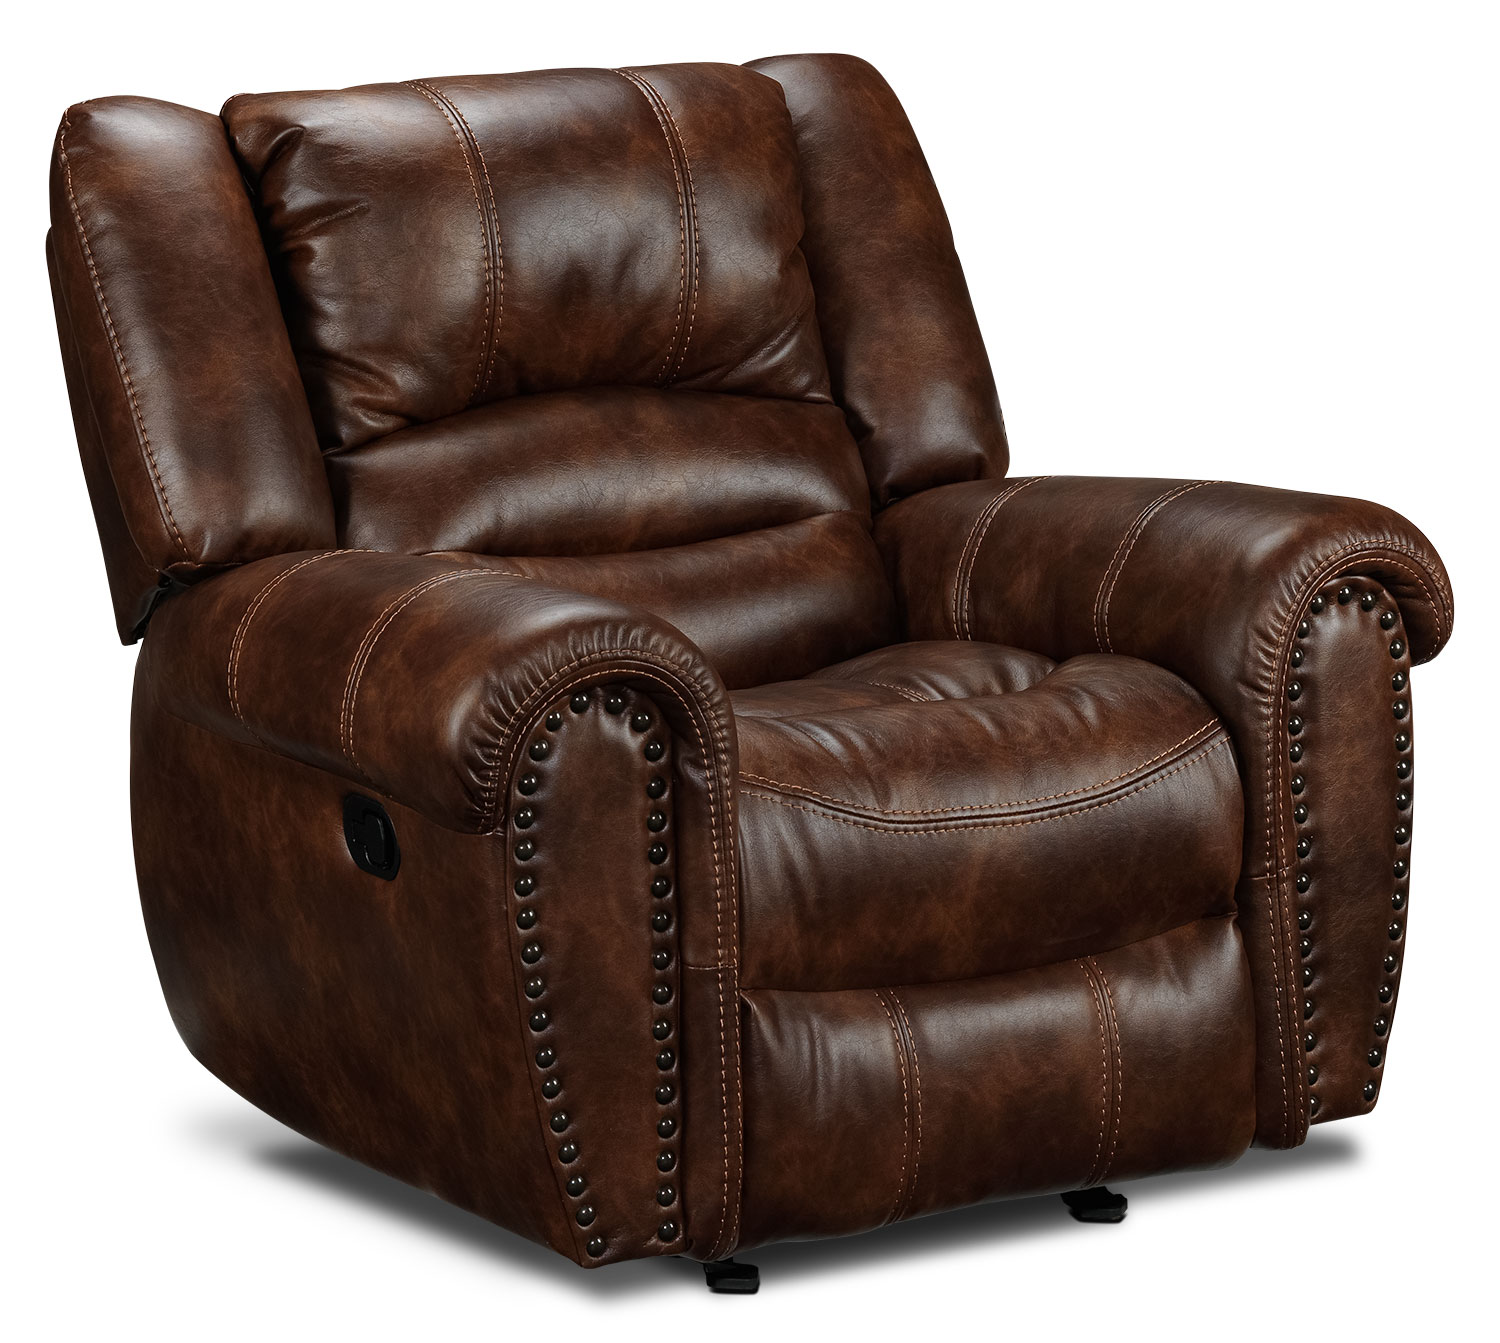 Whitaker Glider Recliner - Brown